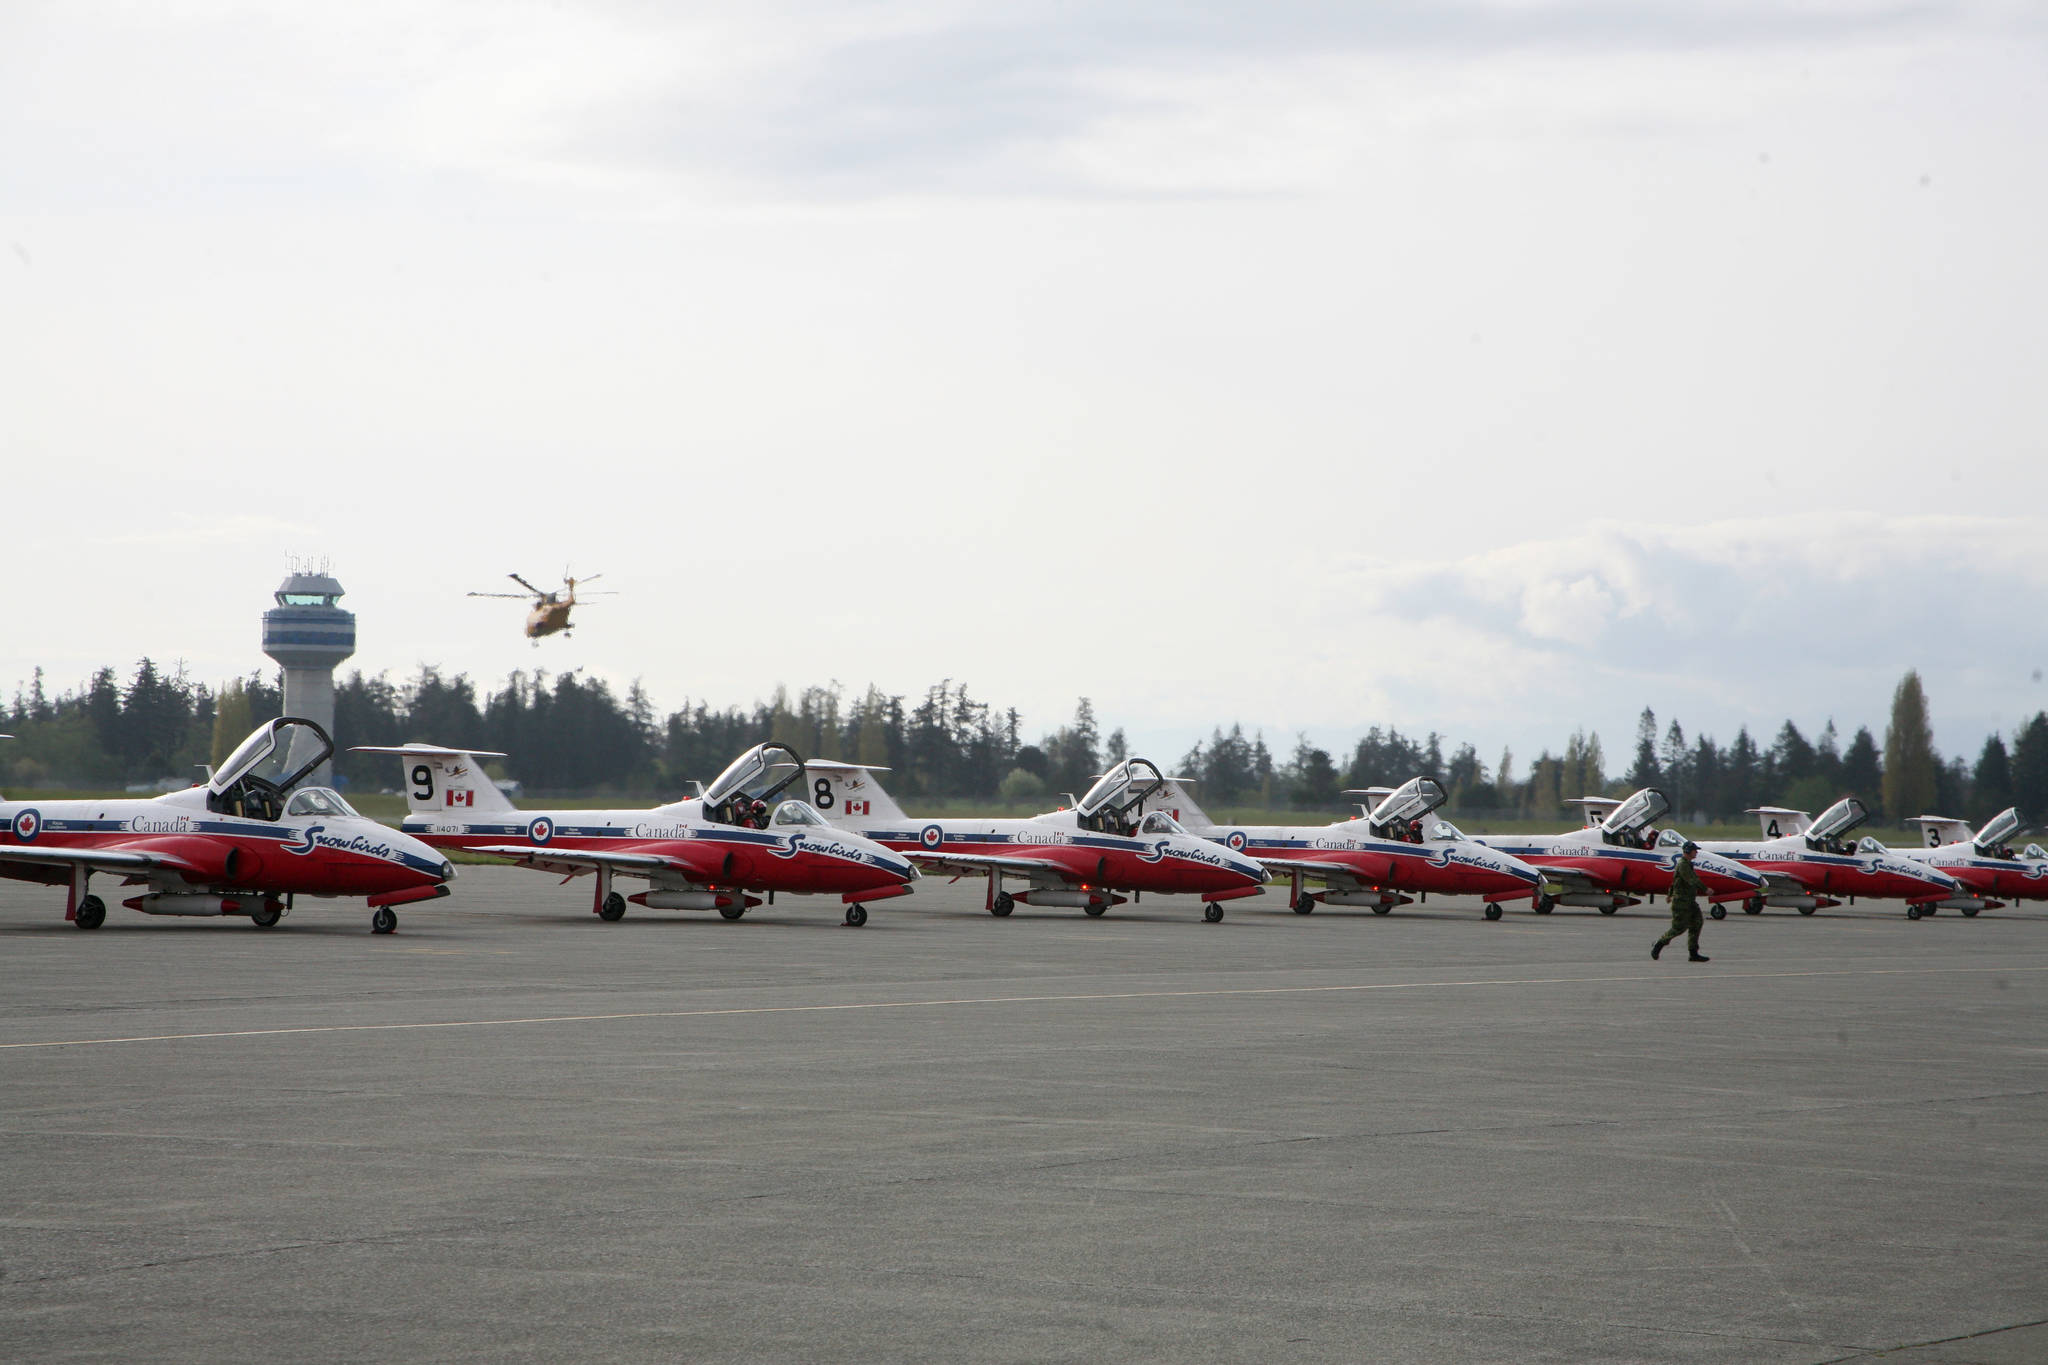 The Canadian Forces Snowbirds are in the Comox Valley for their annual spring training. Photo by Erin Haluschak